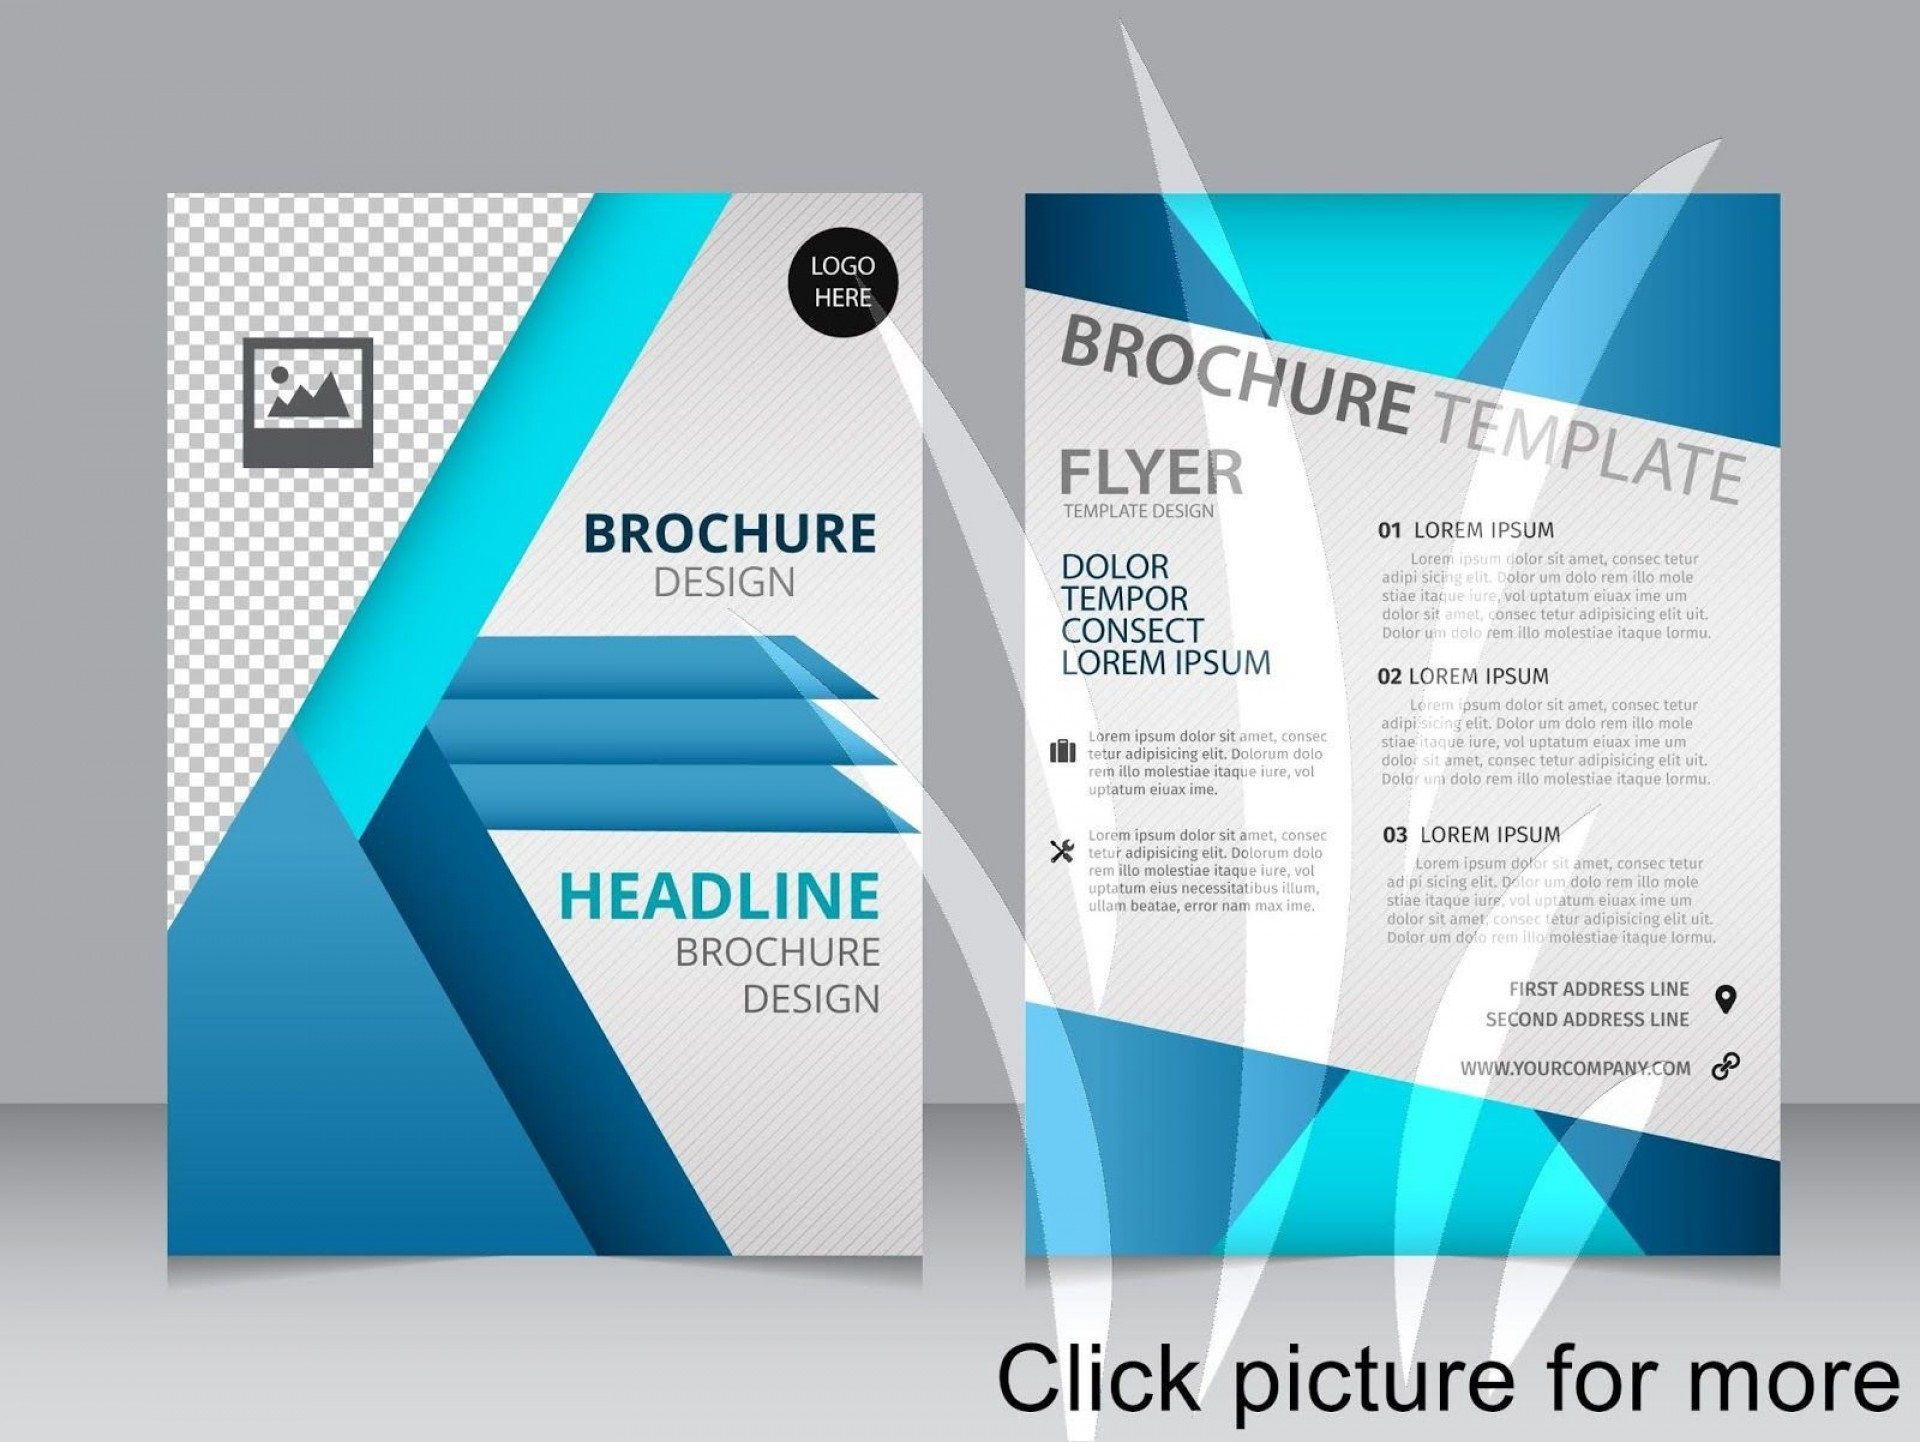 009 Unforgettable Template Brochure For Microsoft Word Free Picture  Flyer Bowling Tri Fold 2010Full